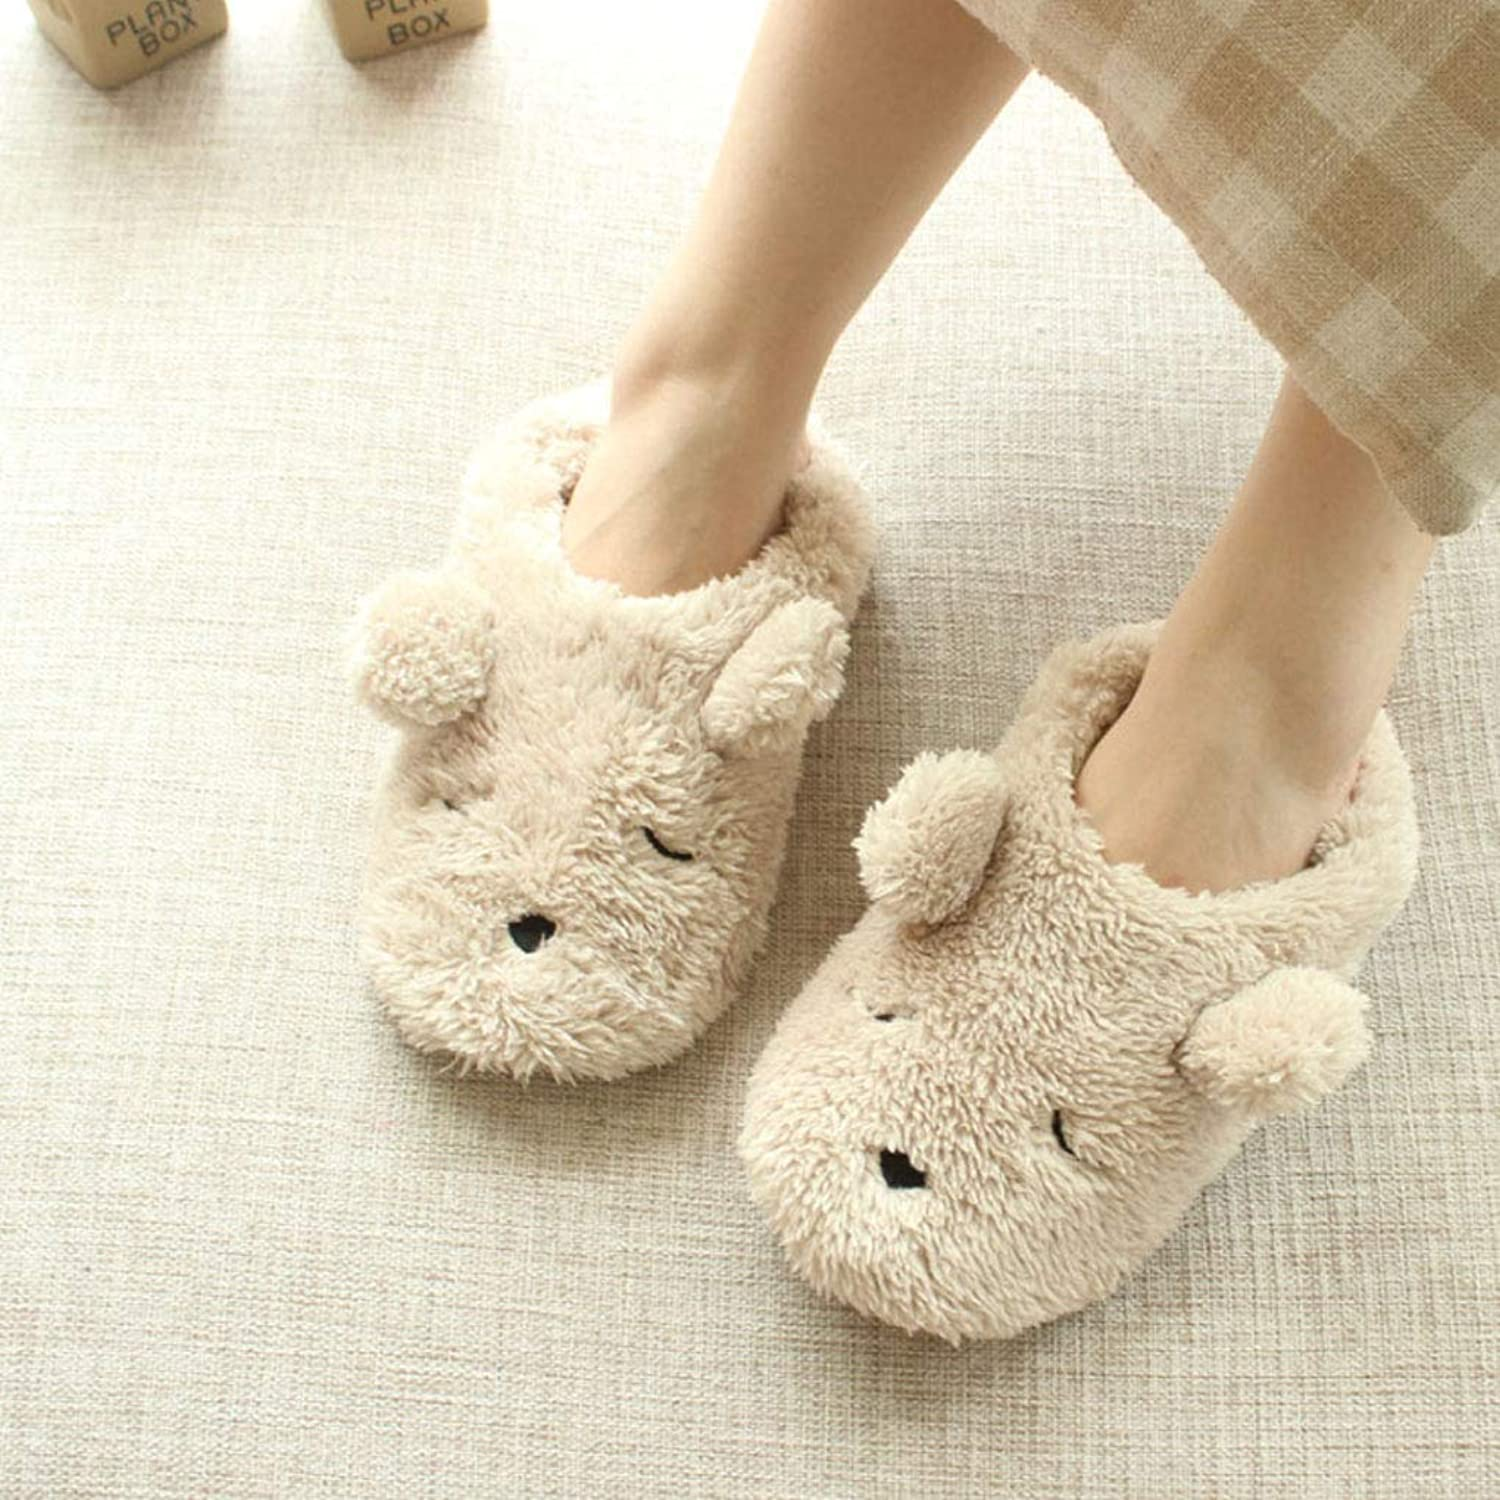 CDDLR Womens Indoor Warm Fleece Plush Thermal Slippers Ladies Girls Cartoon Bear Non-Slip Footwear shoes Mules Home Indoor House Hotel Floor Slip-on Ankle Short Boots shoes Holiday